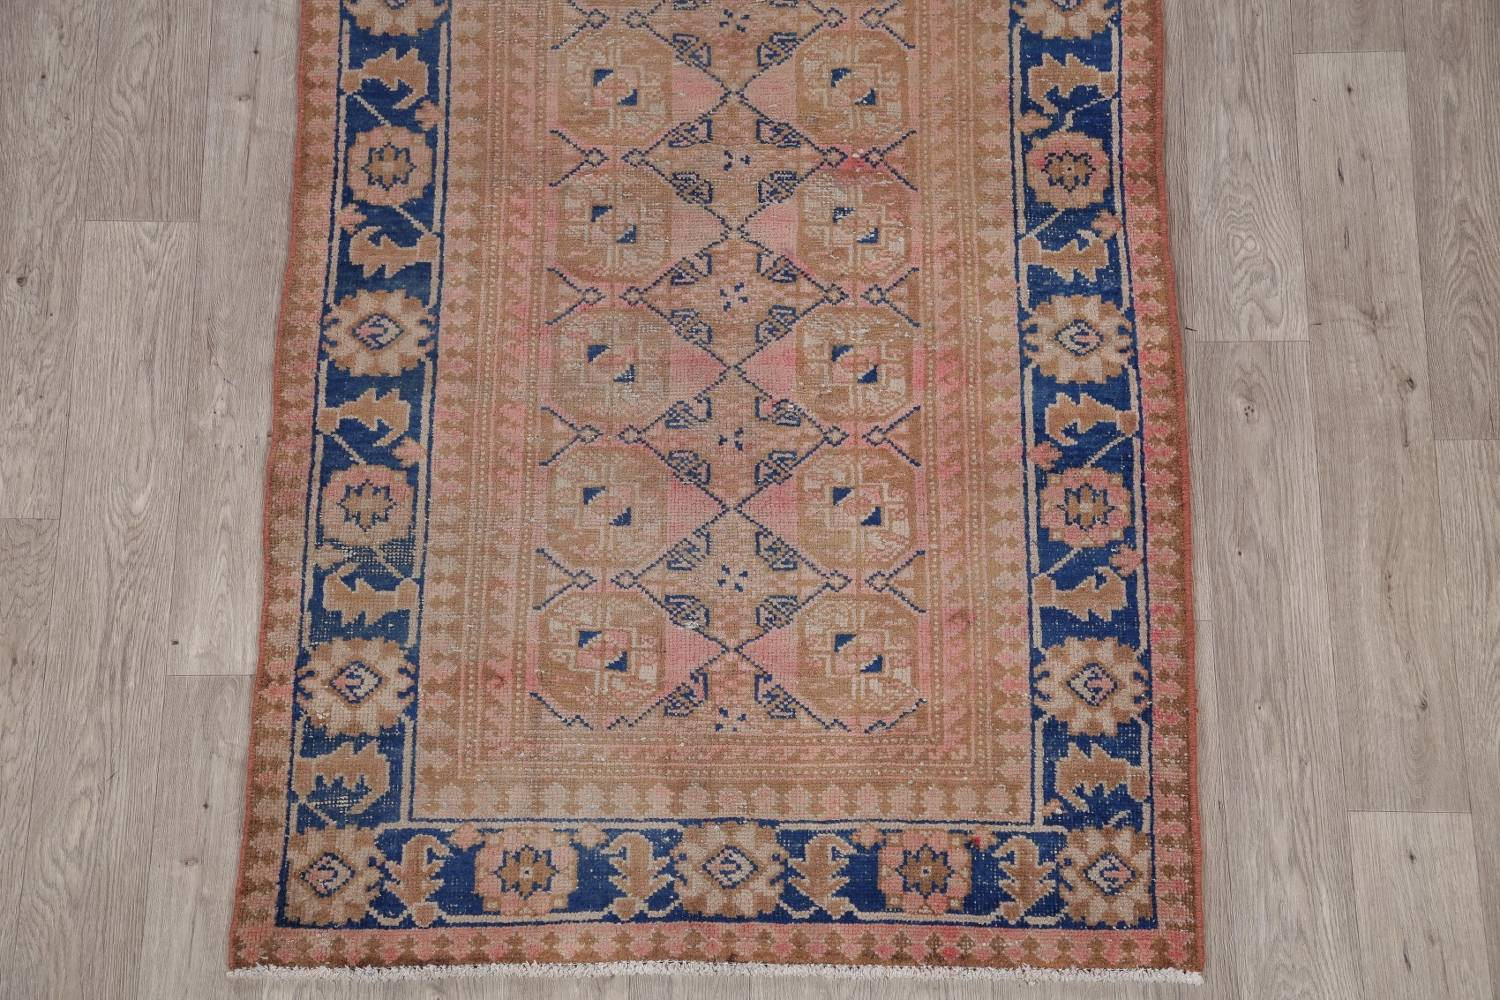 Antique Muted Distressed Malayer Persian Runner Rug 4x11 image 5